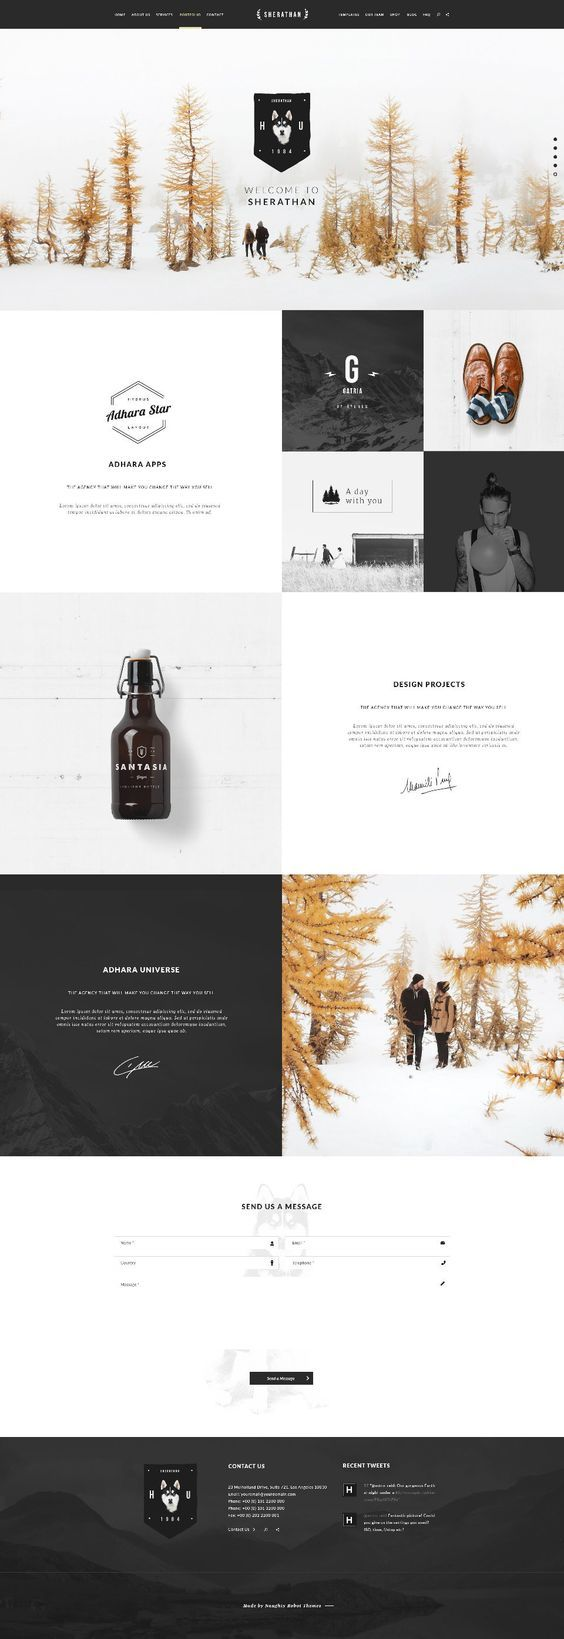 Hydrus Web Design Inspiration by naughtyrobot | Fivestar Branding – Design and Branding Agency & Inspiration Gallery